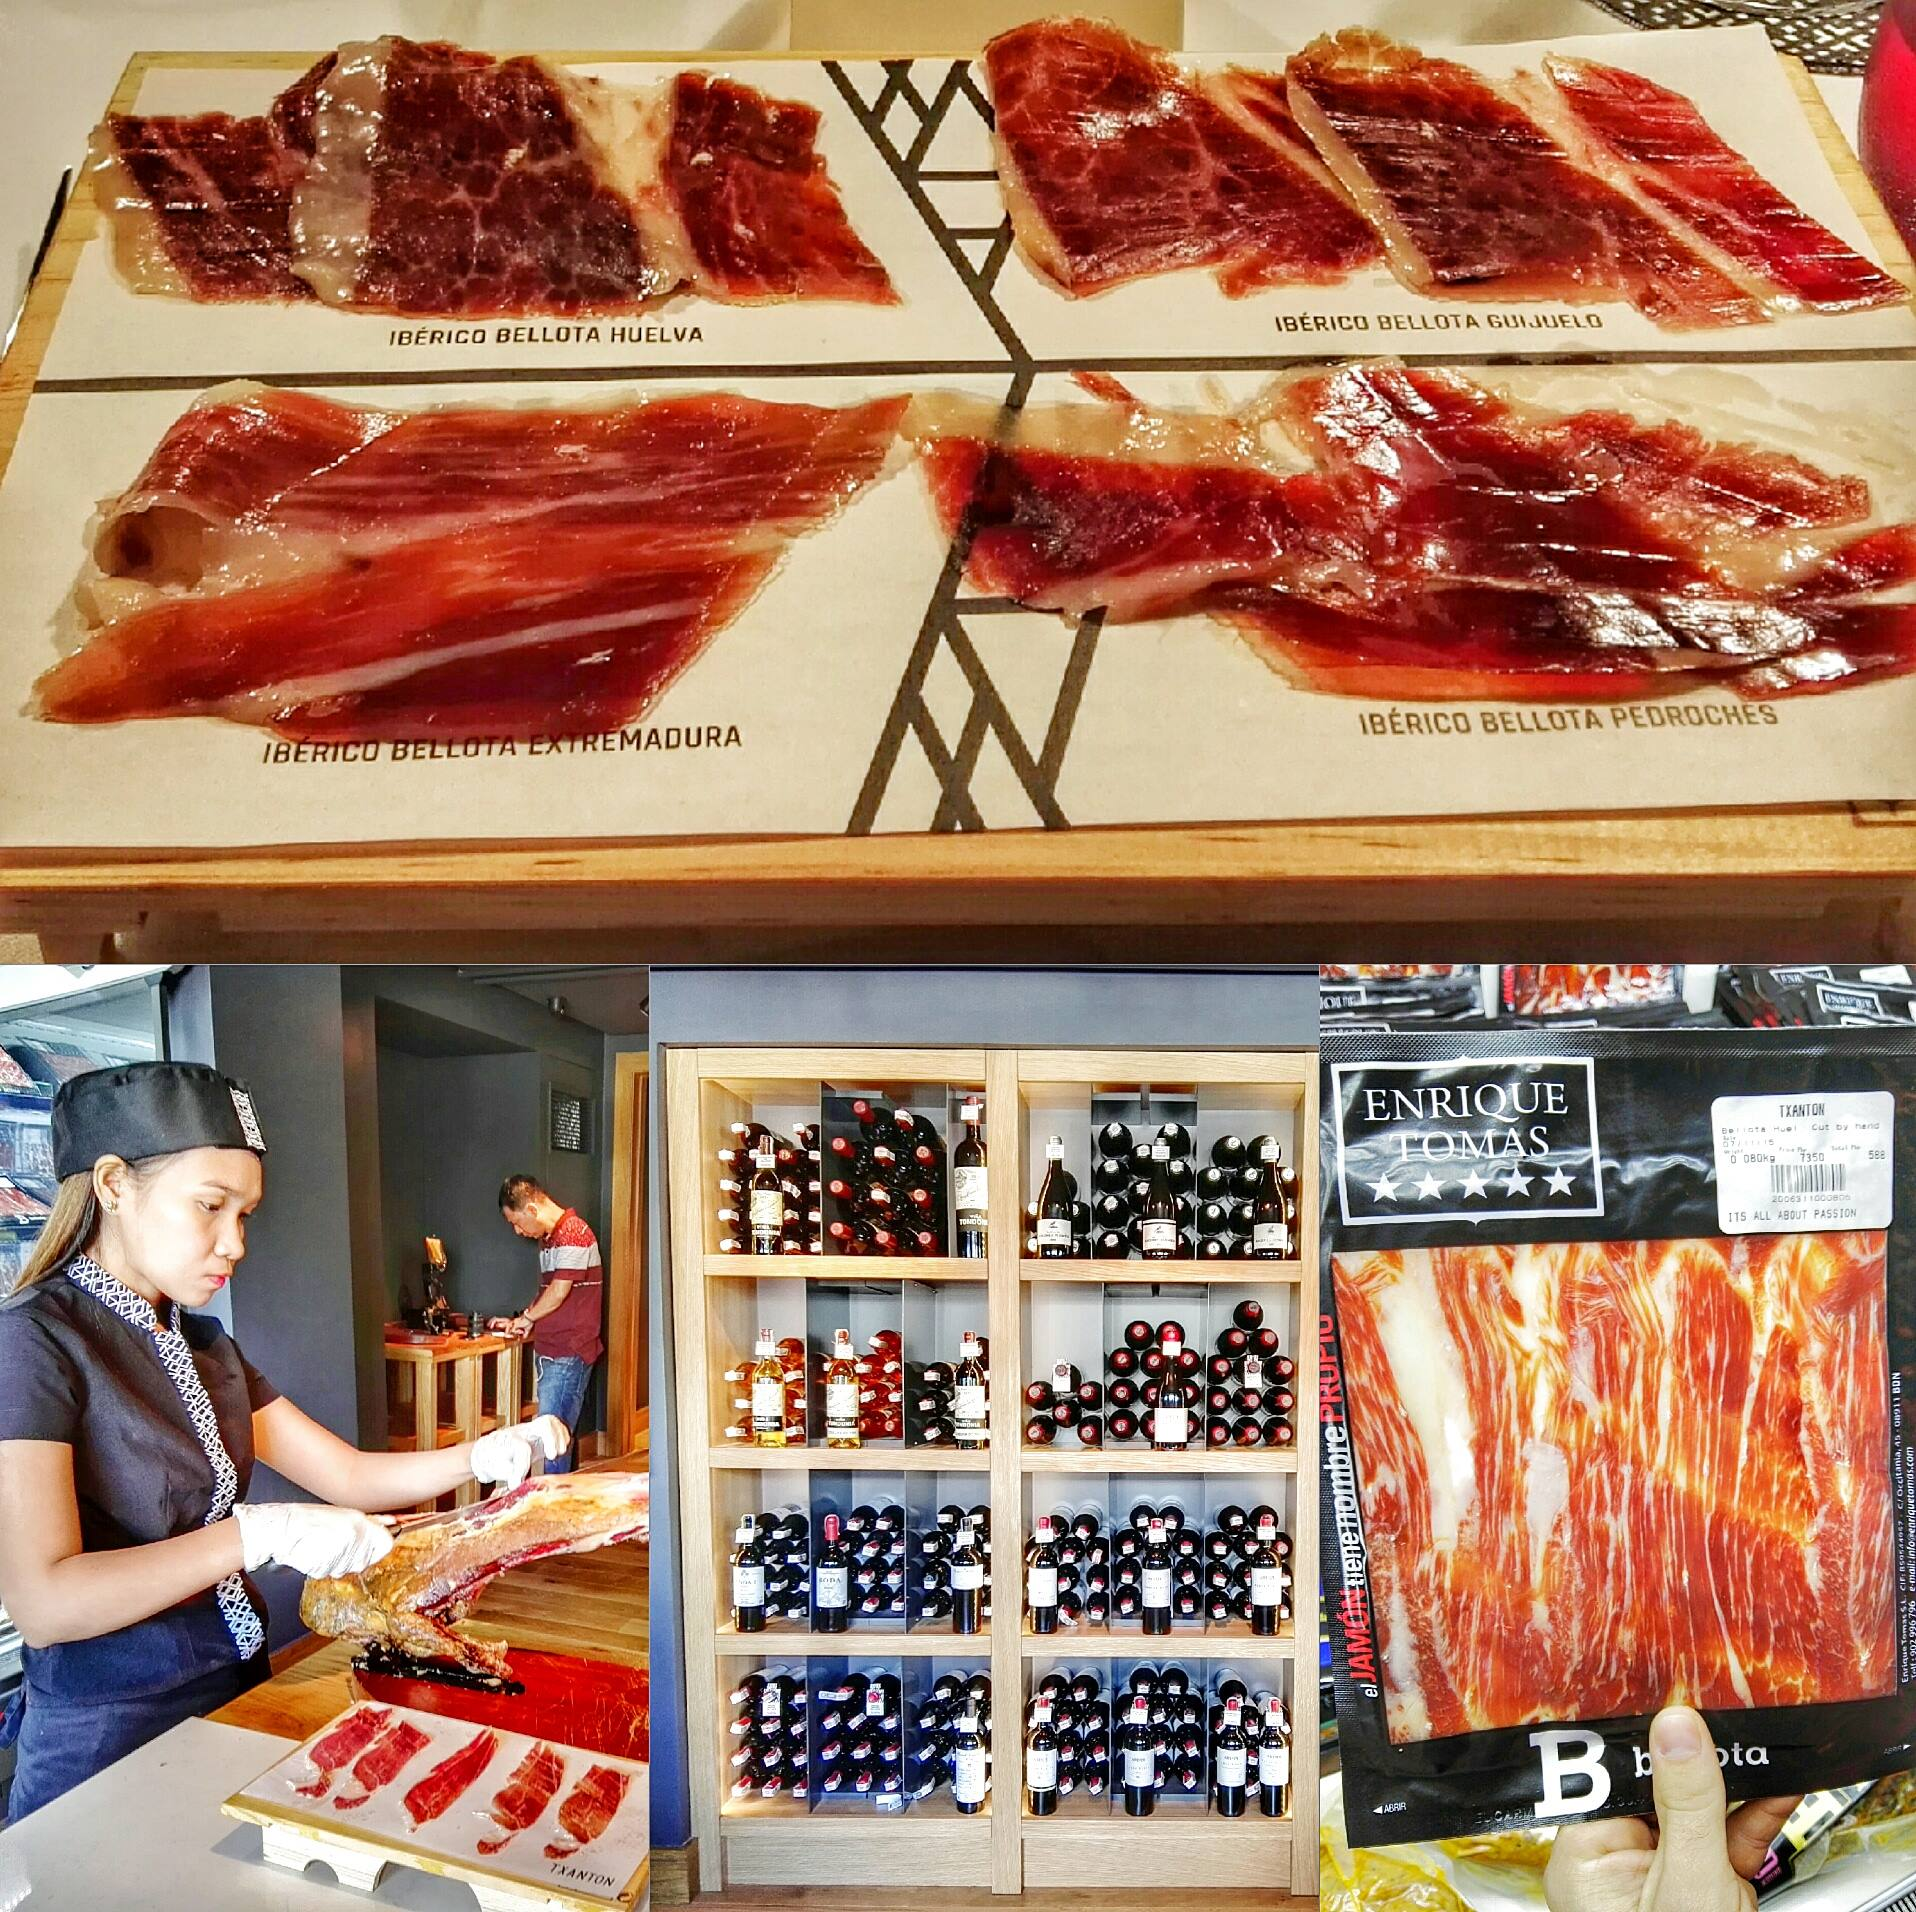 Txanton at Chino Roces Ave. or Pasong Tamo Ext. in Makati is the first jamoneria and wine cellar in the Philippines